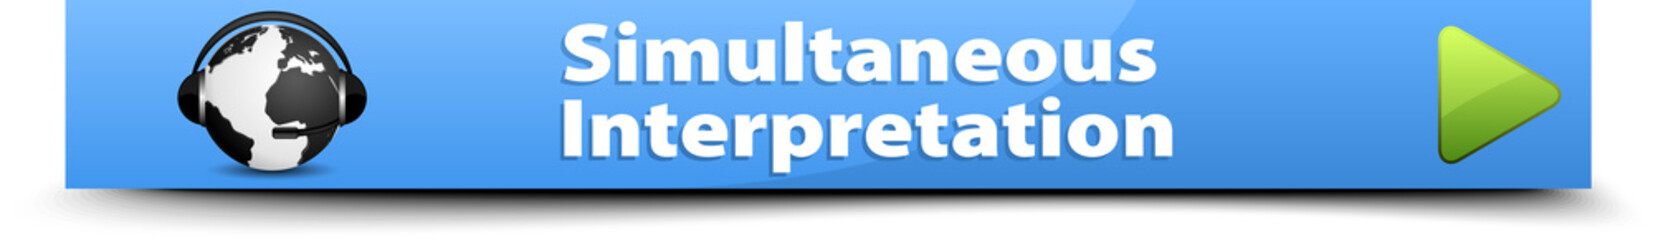 Simultaneous Interpretation banner